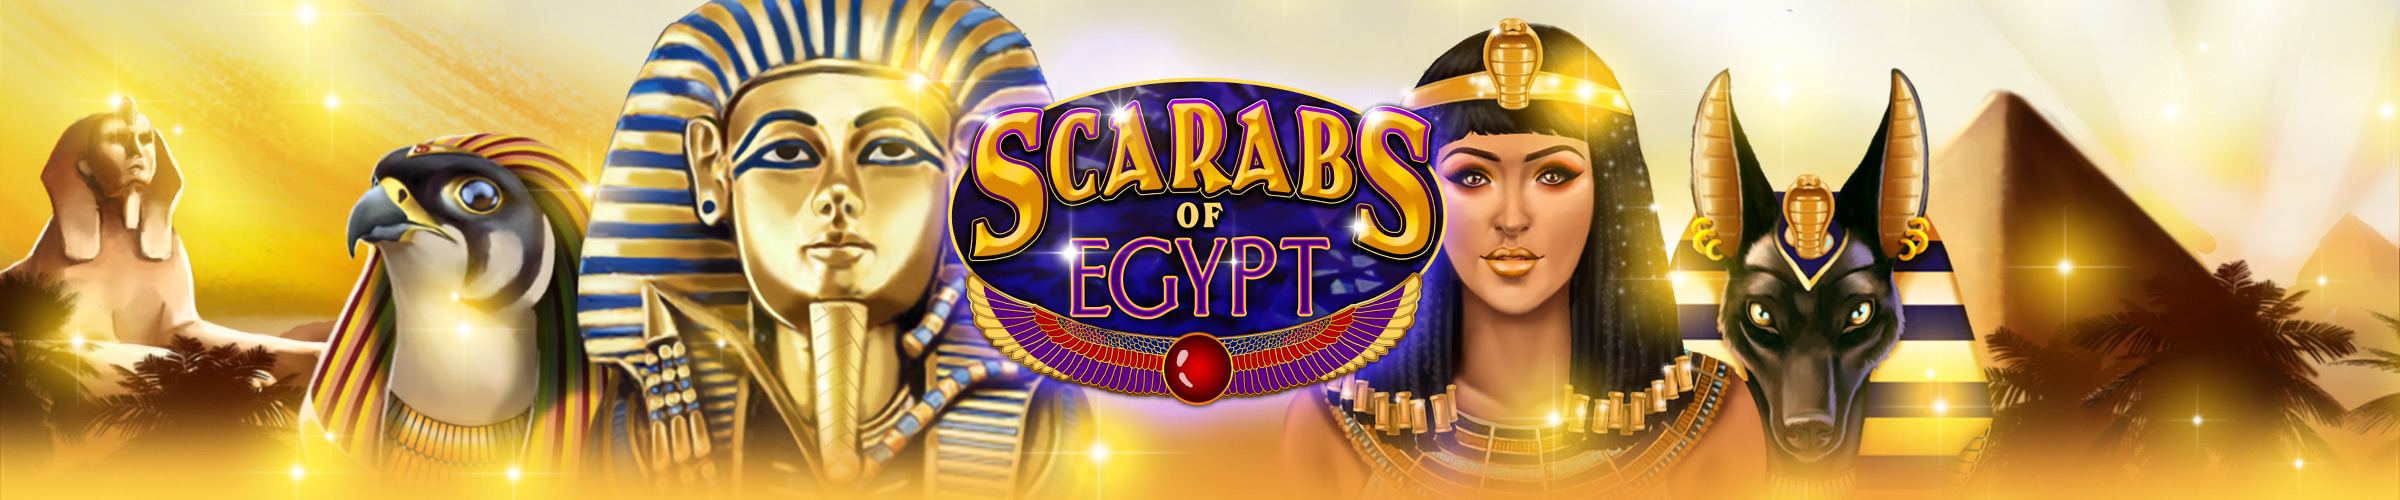 Scarabs of Egypt